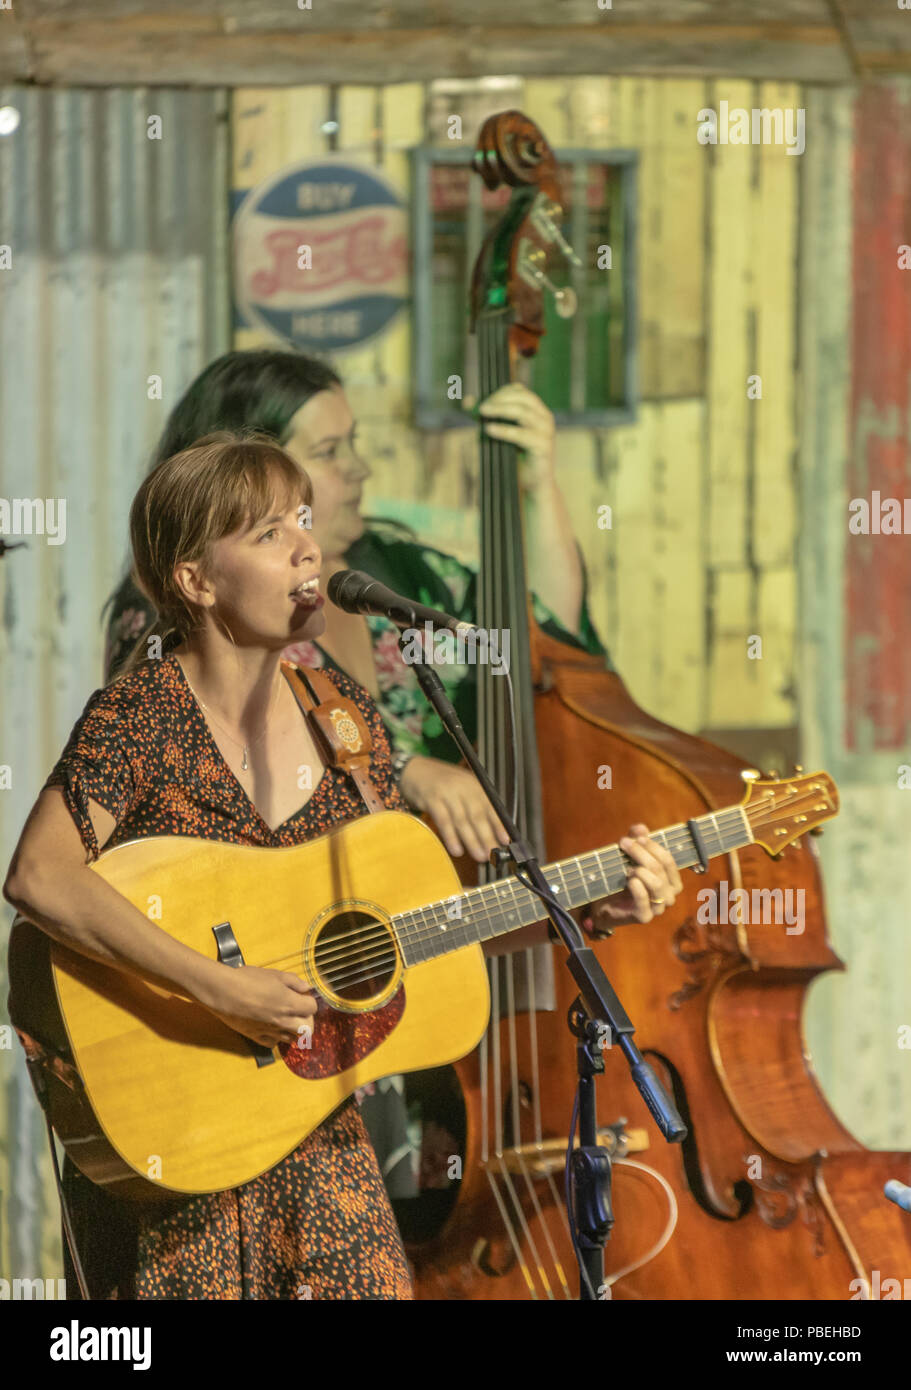 Bournemouth, UK. 27th July 2018. Midnight Skyracer play as people enjoy the live bluegrass and country music, beer and food on offer at the Beer and Bluegrass Festival in Bournemouth. Credit: Thomas Faull/Alamy Live News Stock Photo